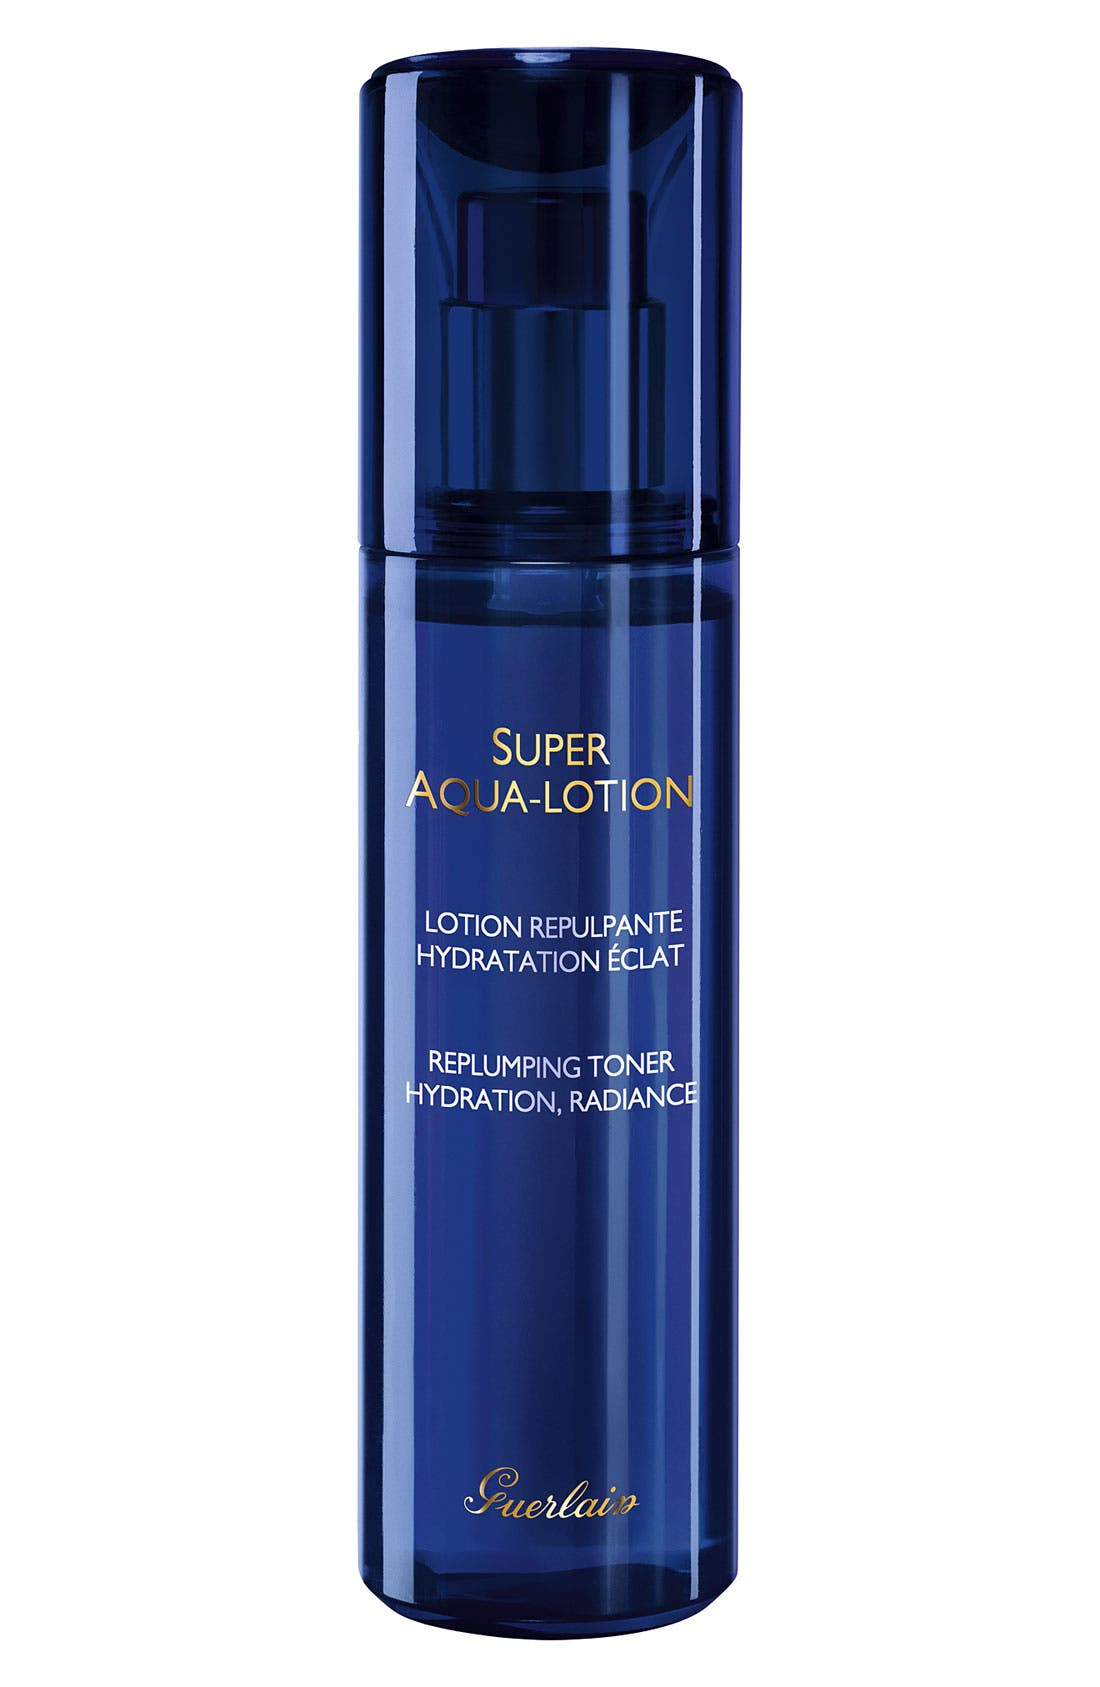 Guerlain 'Super Aqua Lotion' Hydrating Toner